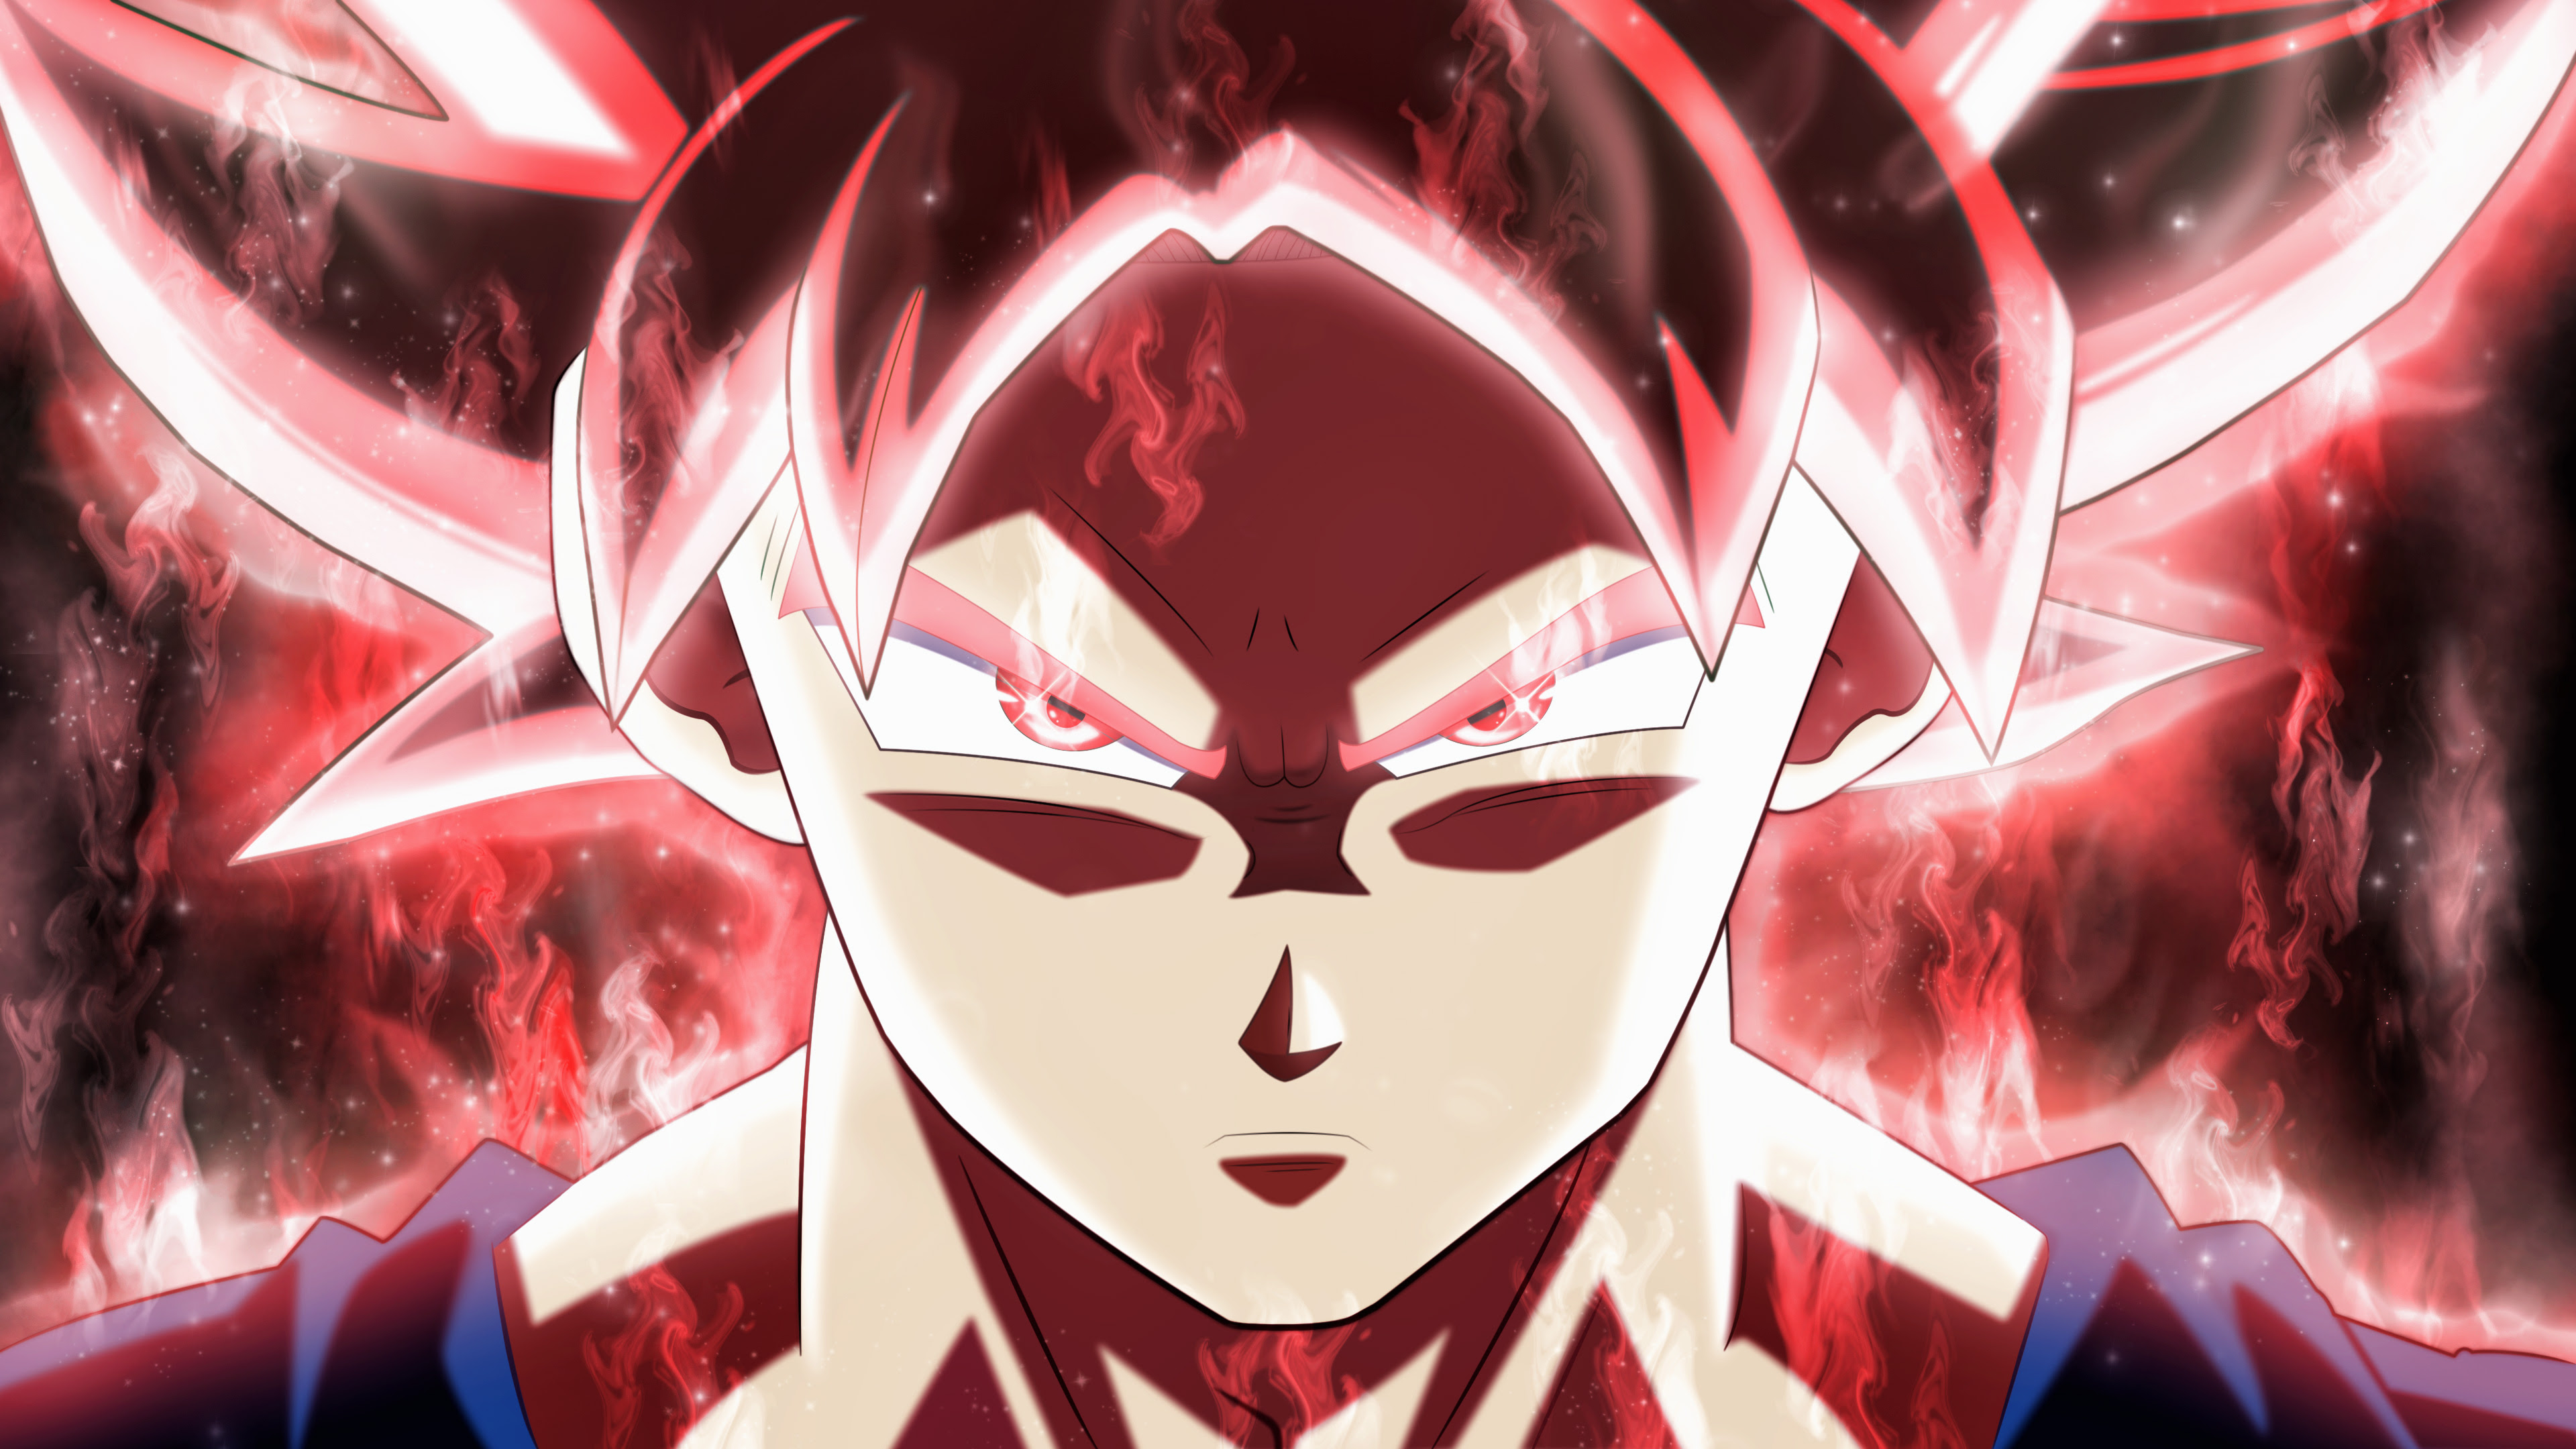 Son Goku In Dragon Ball Super 4k Wallpapers Hd Wallpapers